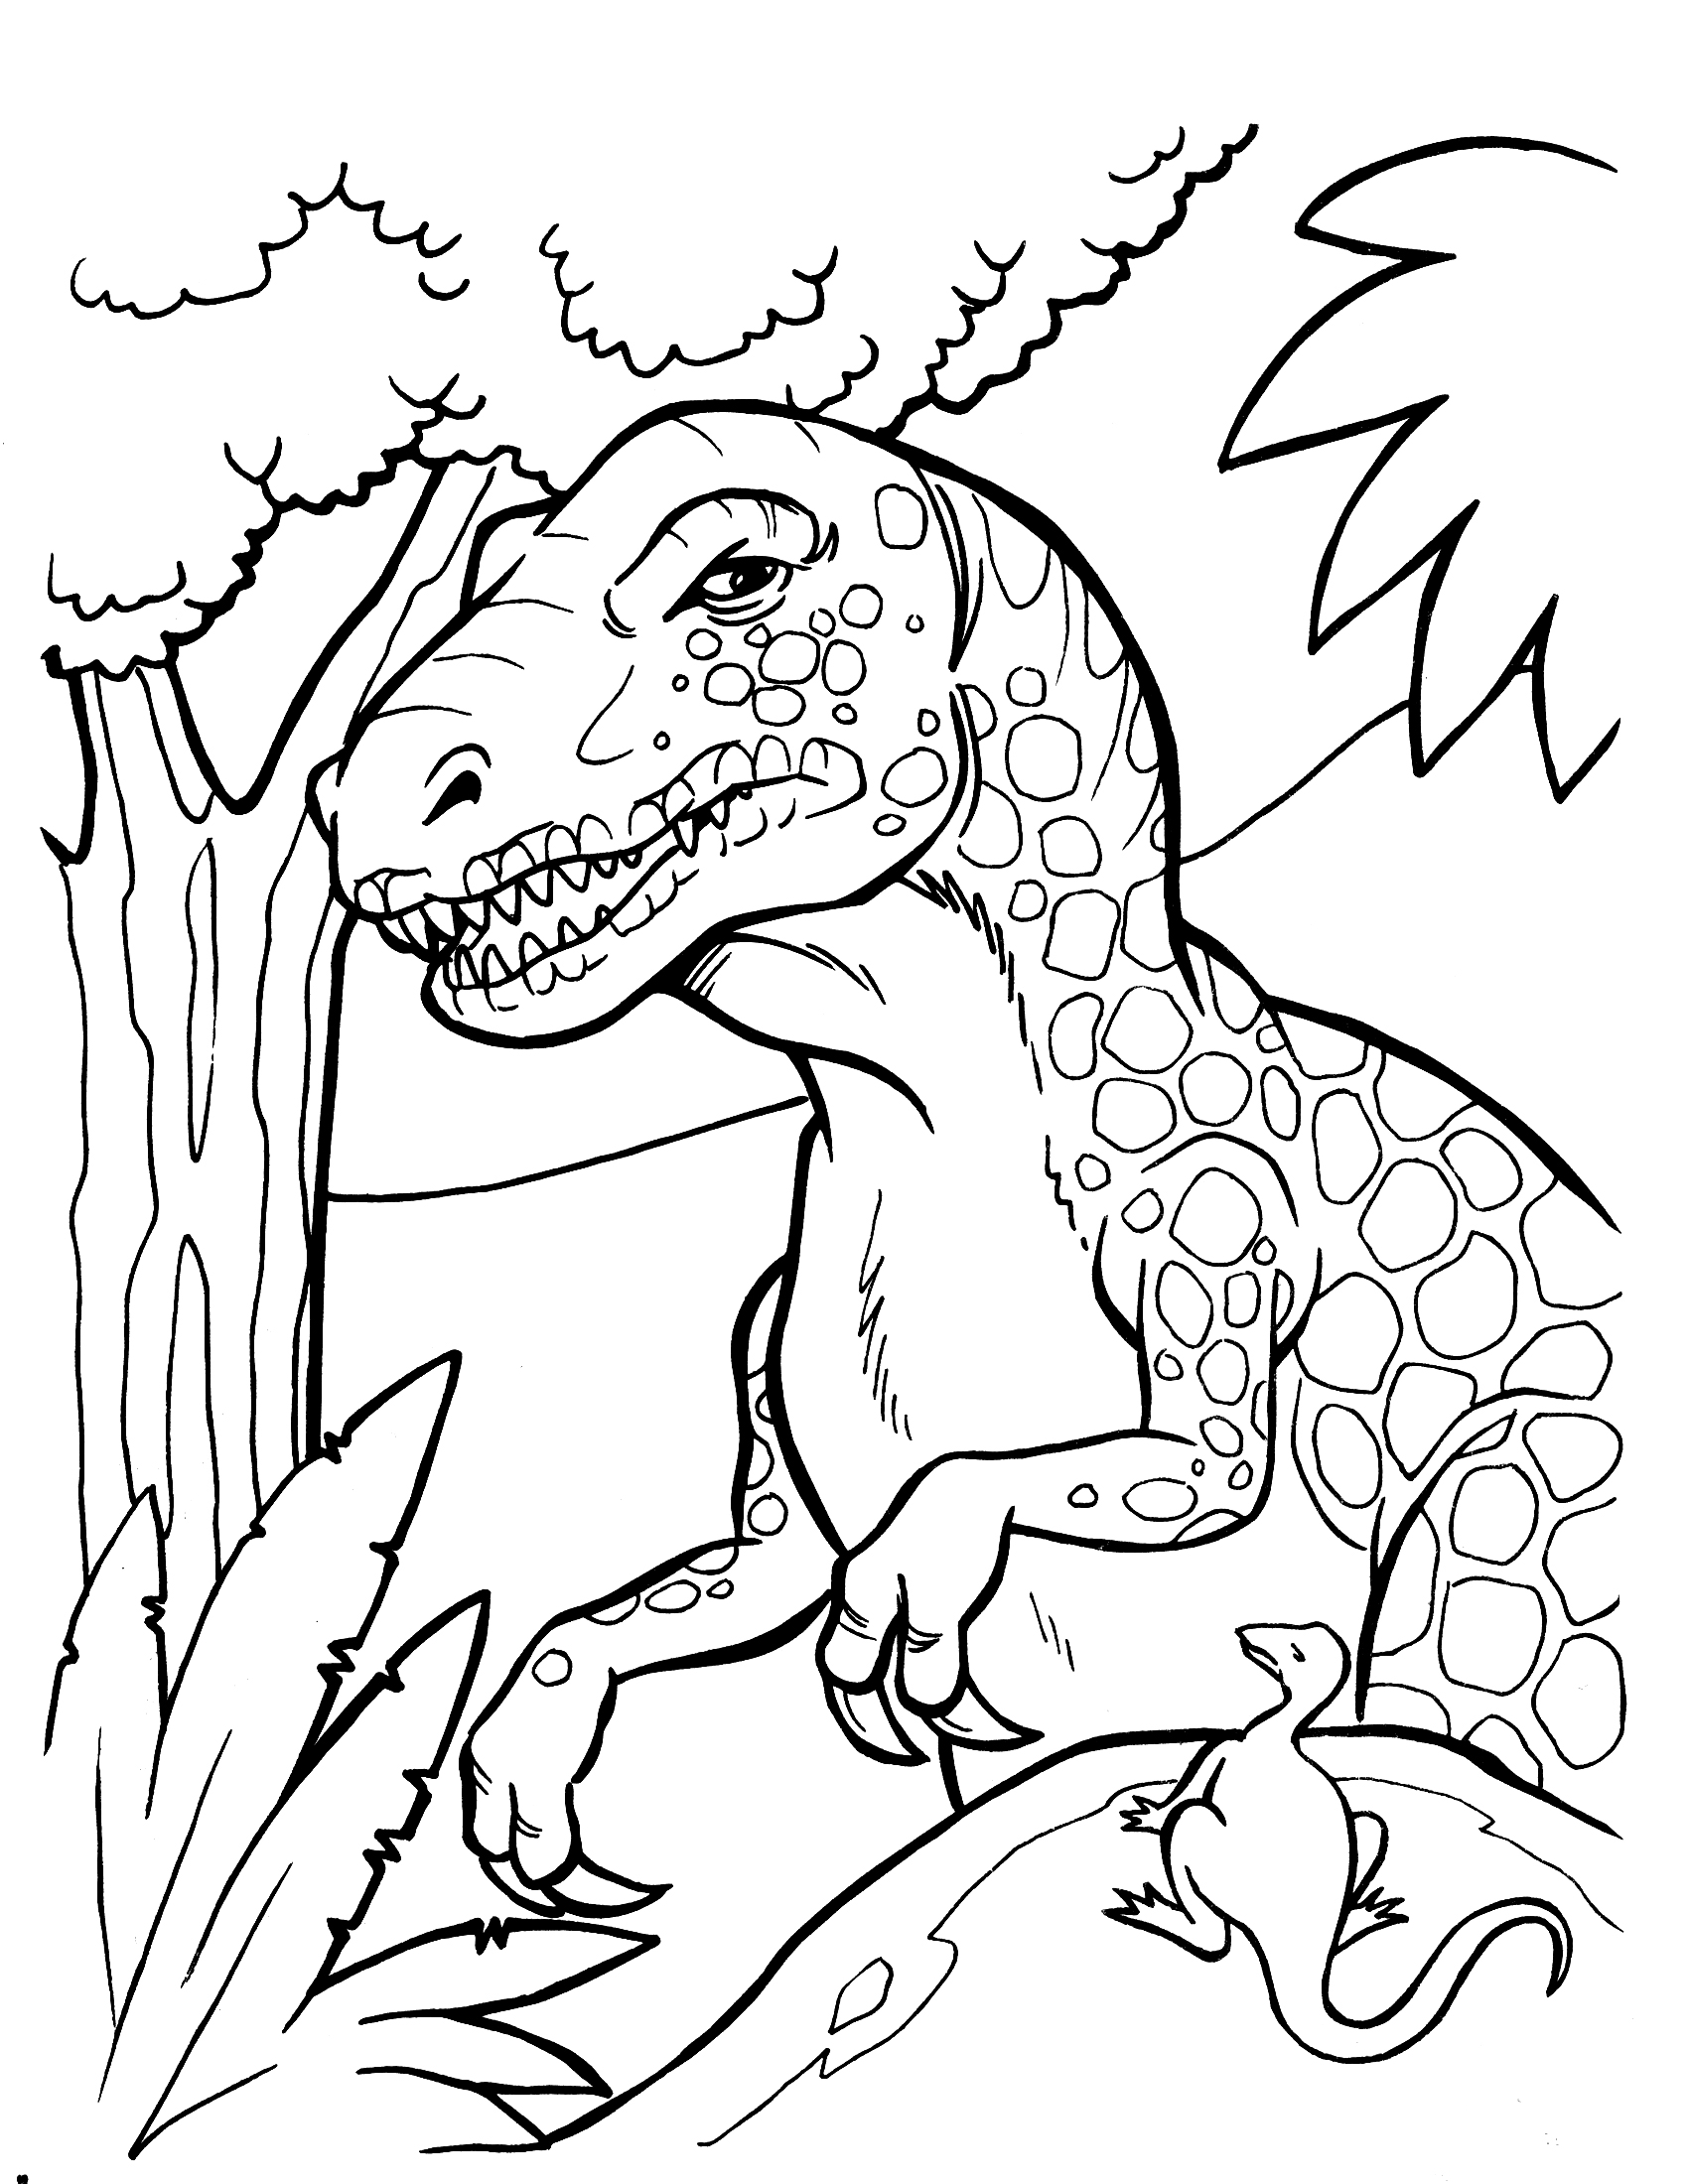 free coloring coloring pages - photo#19